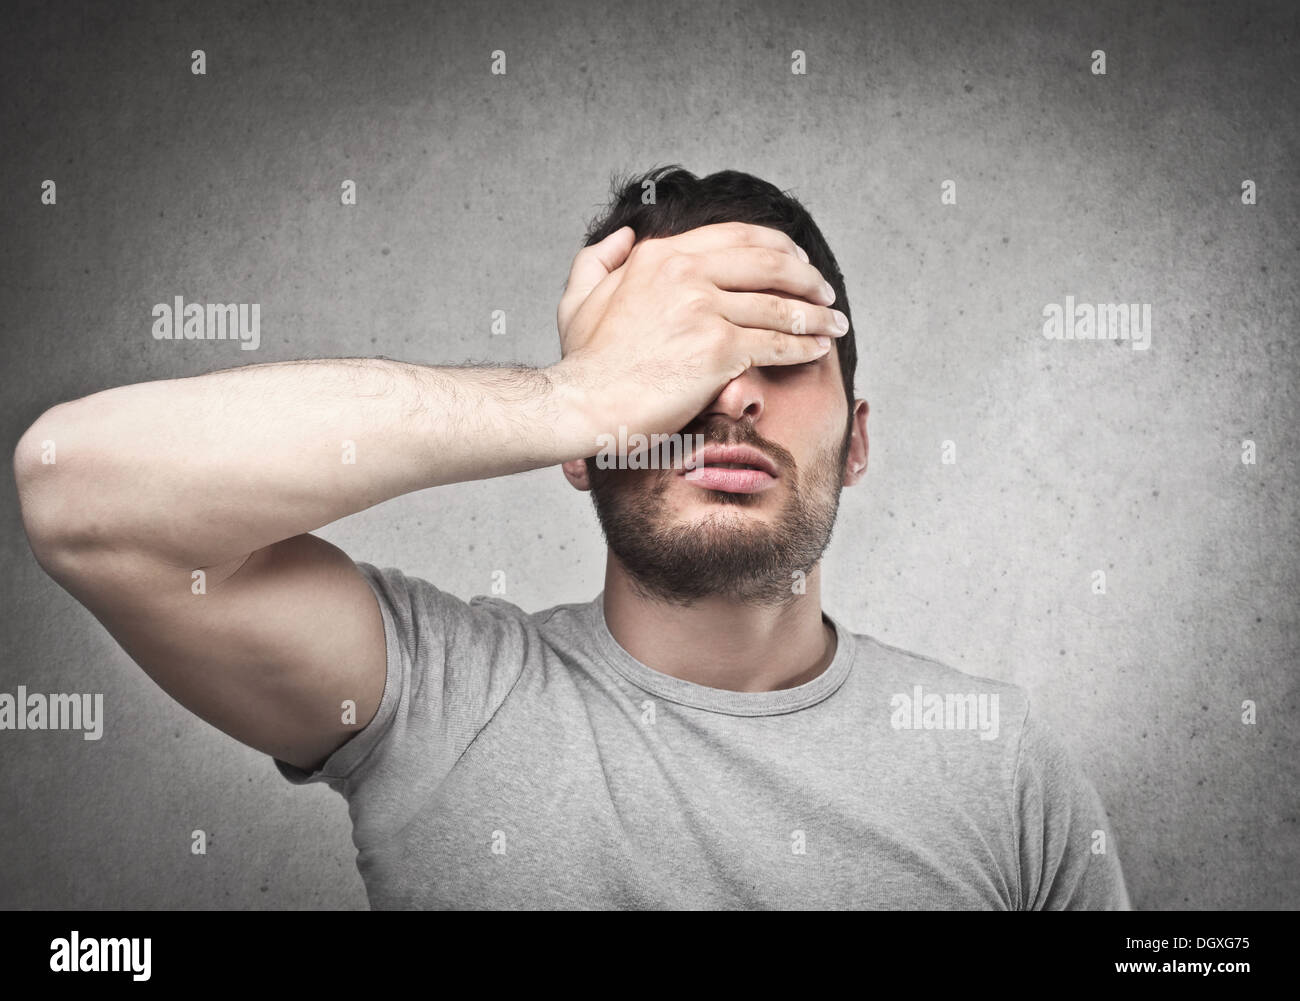 Man has made a mistake - Stock Image